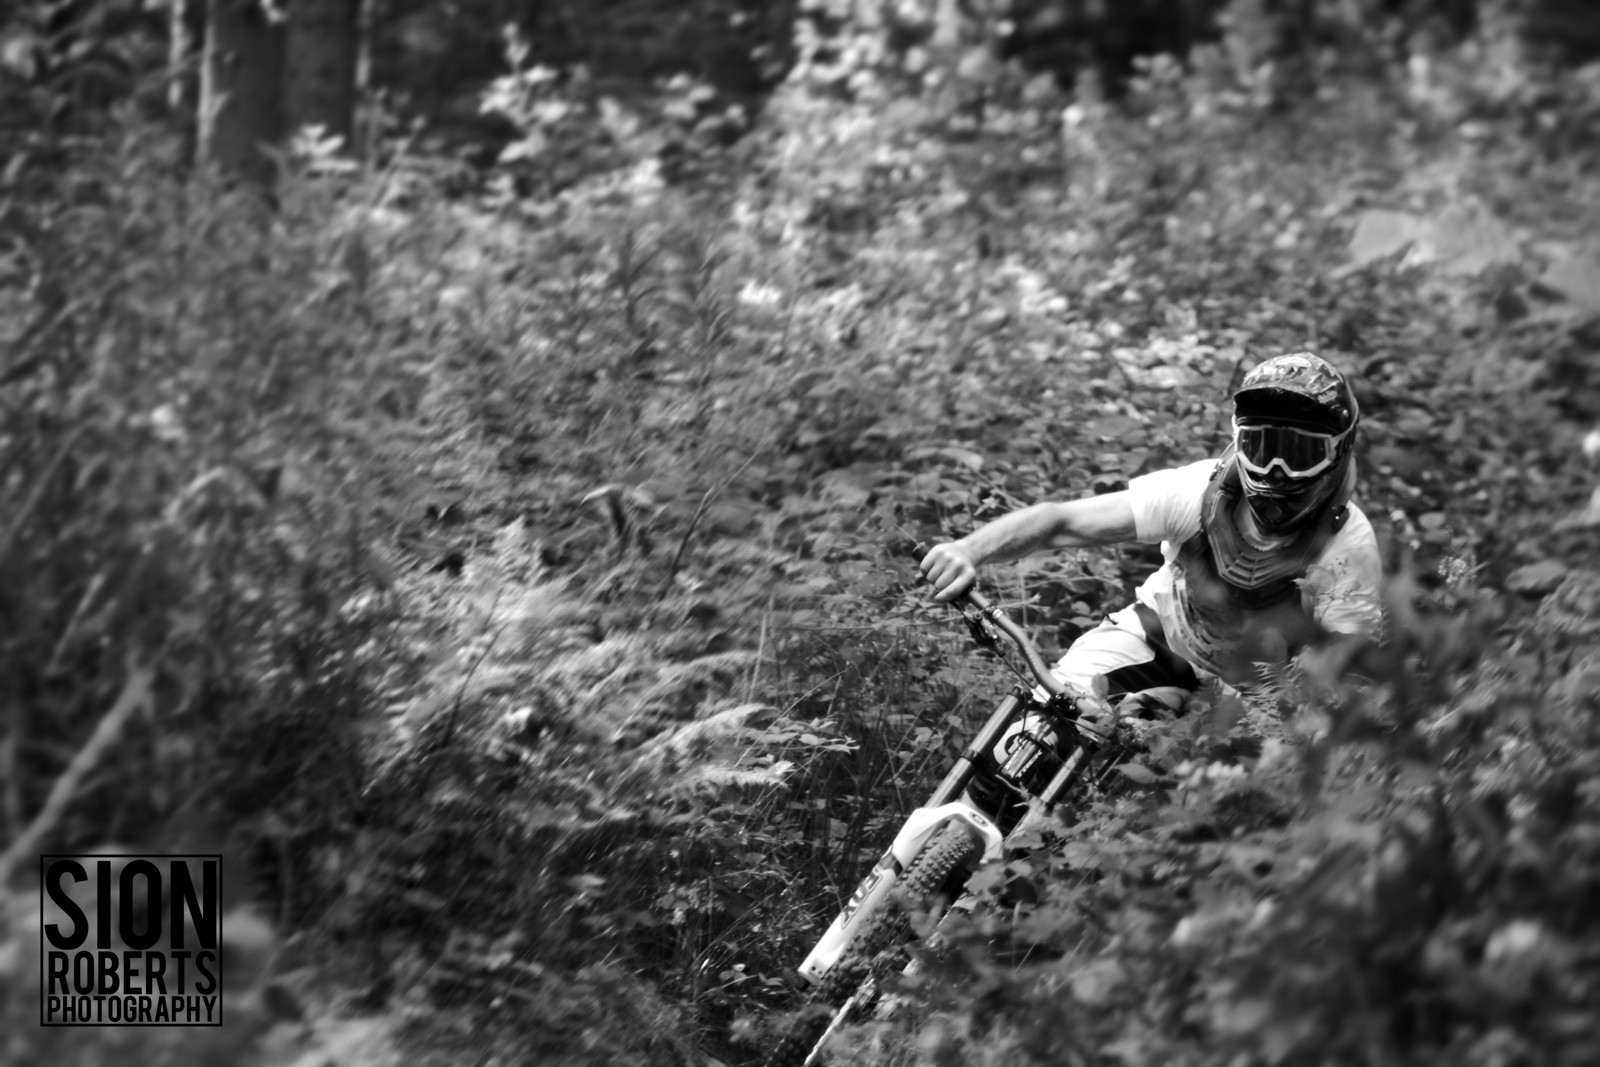 A Berm Through Bracken B&W - sionr644 - Mountain Biking Pictures - Vital MTB